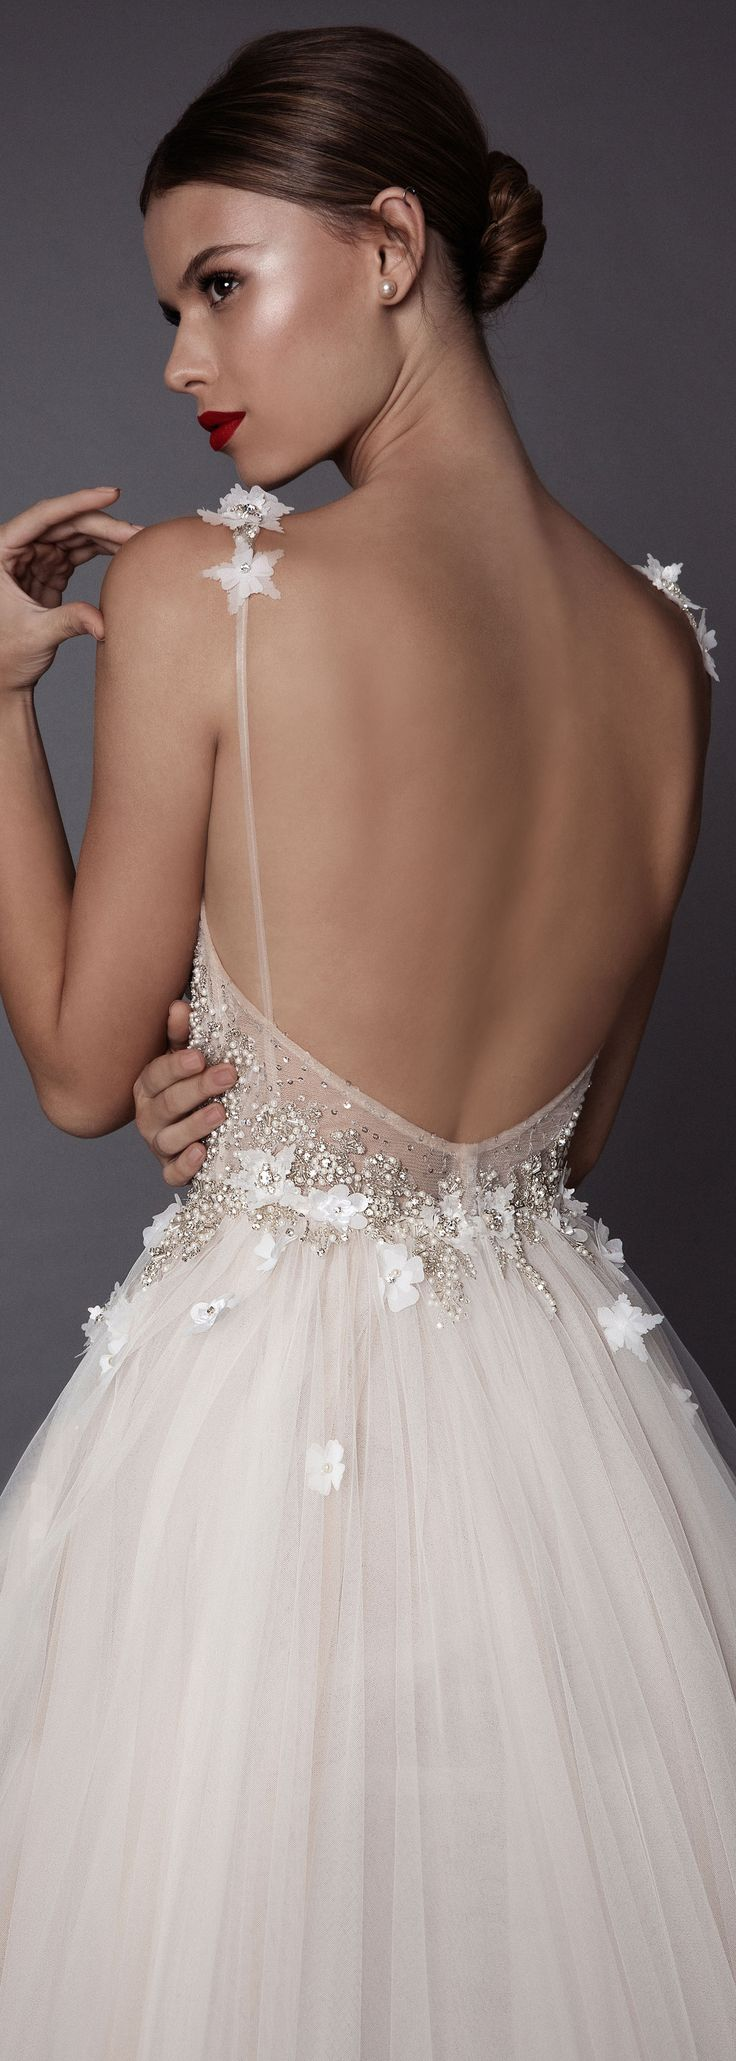 """Adel"" from the new bridal line - MUSE by berta <3"